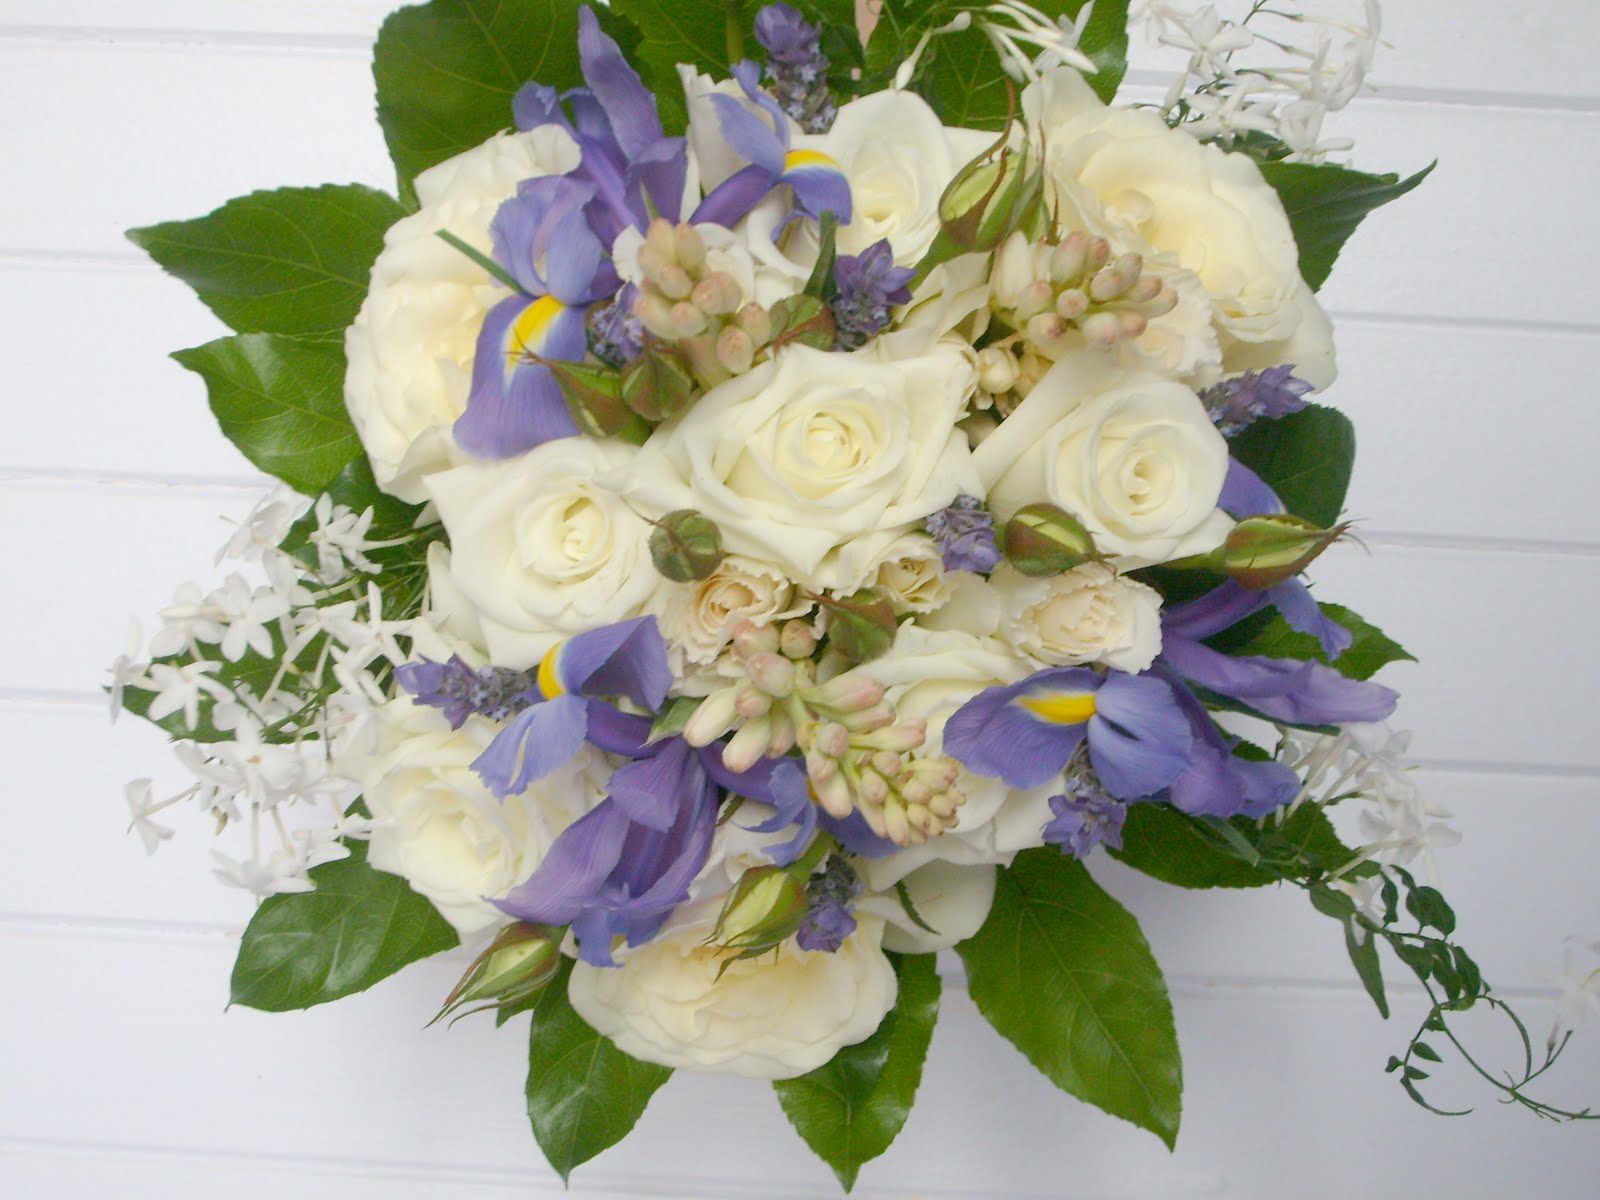 august wedding flowers bouquets photo - 1